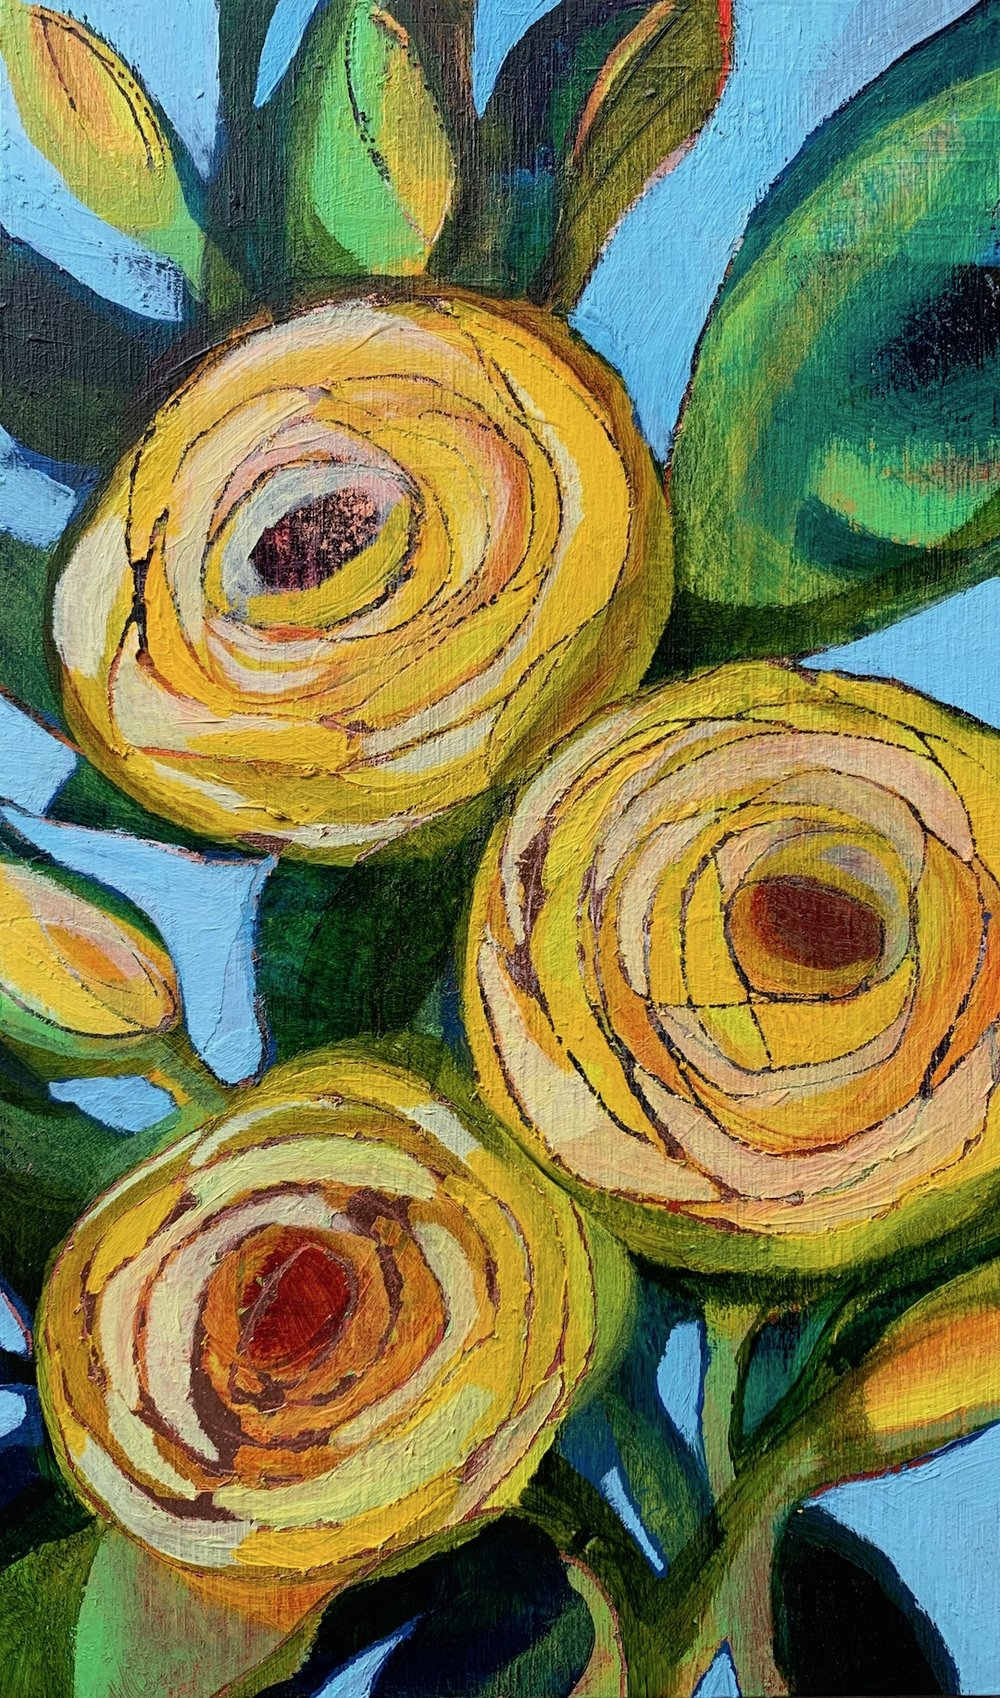 """Storybook Yellow Flowers"", copper leaf, acrylic on panel, 11"" x 6.5"", $300"